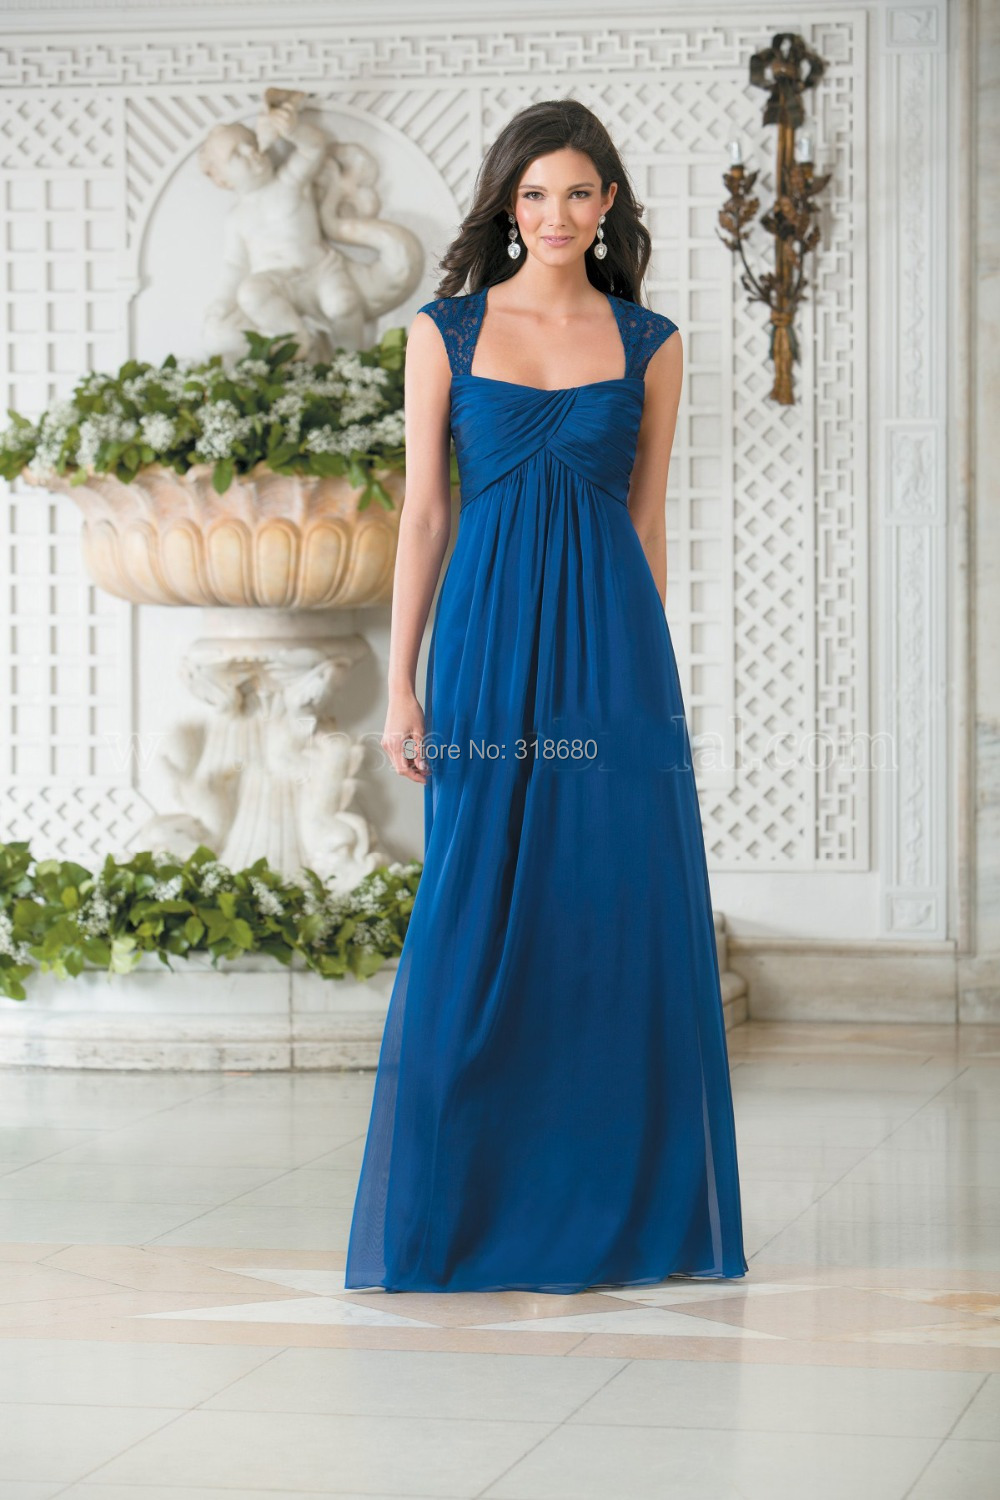 Unique Design Ruched Bodice New Years Eve Dresses Cobalt Long Latest ...